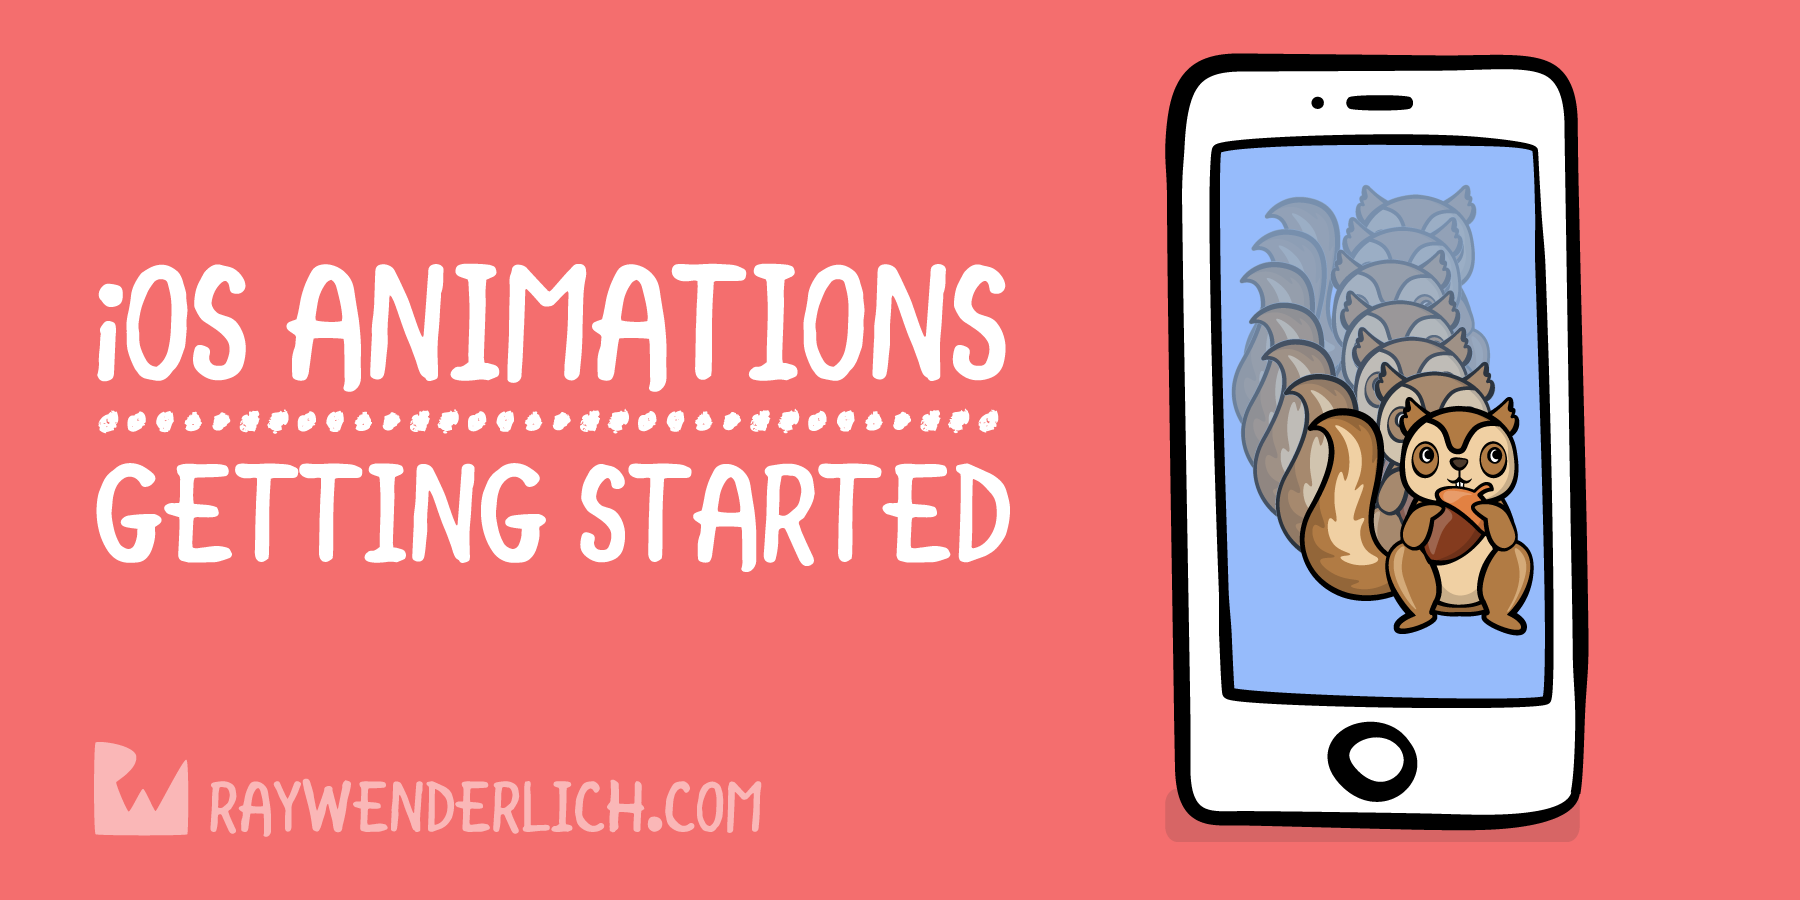 iOS Animation Tutorial: Getting Started [FREE]